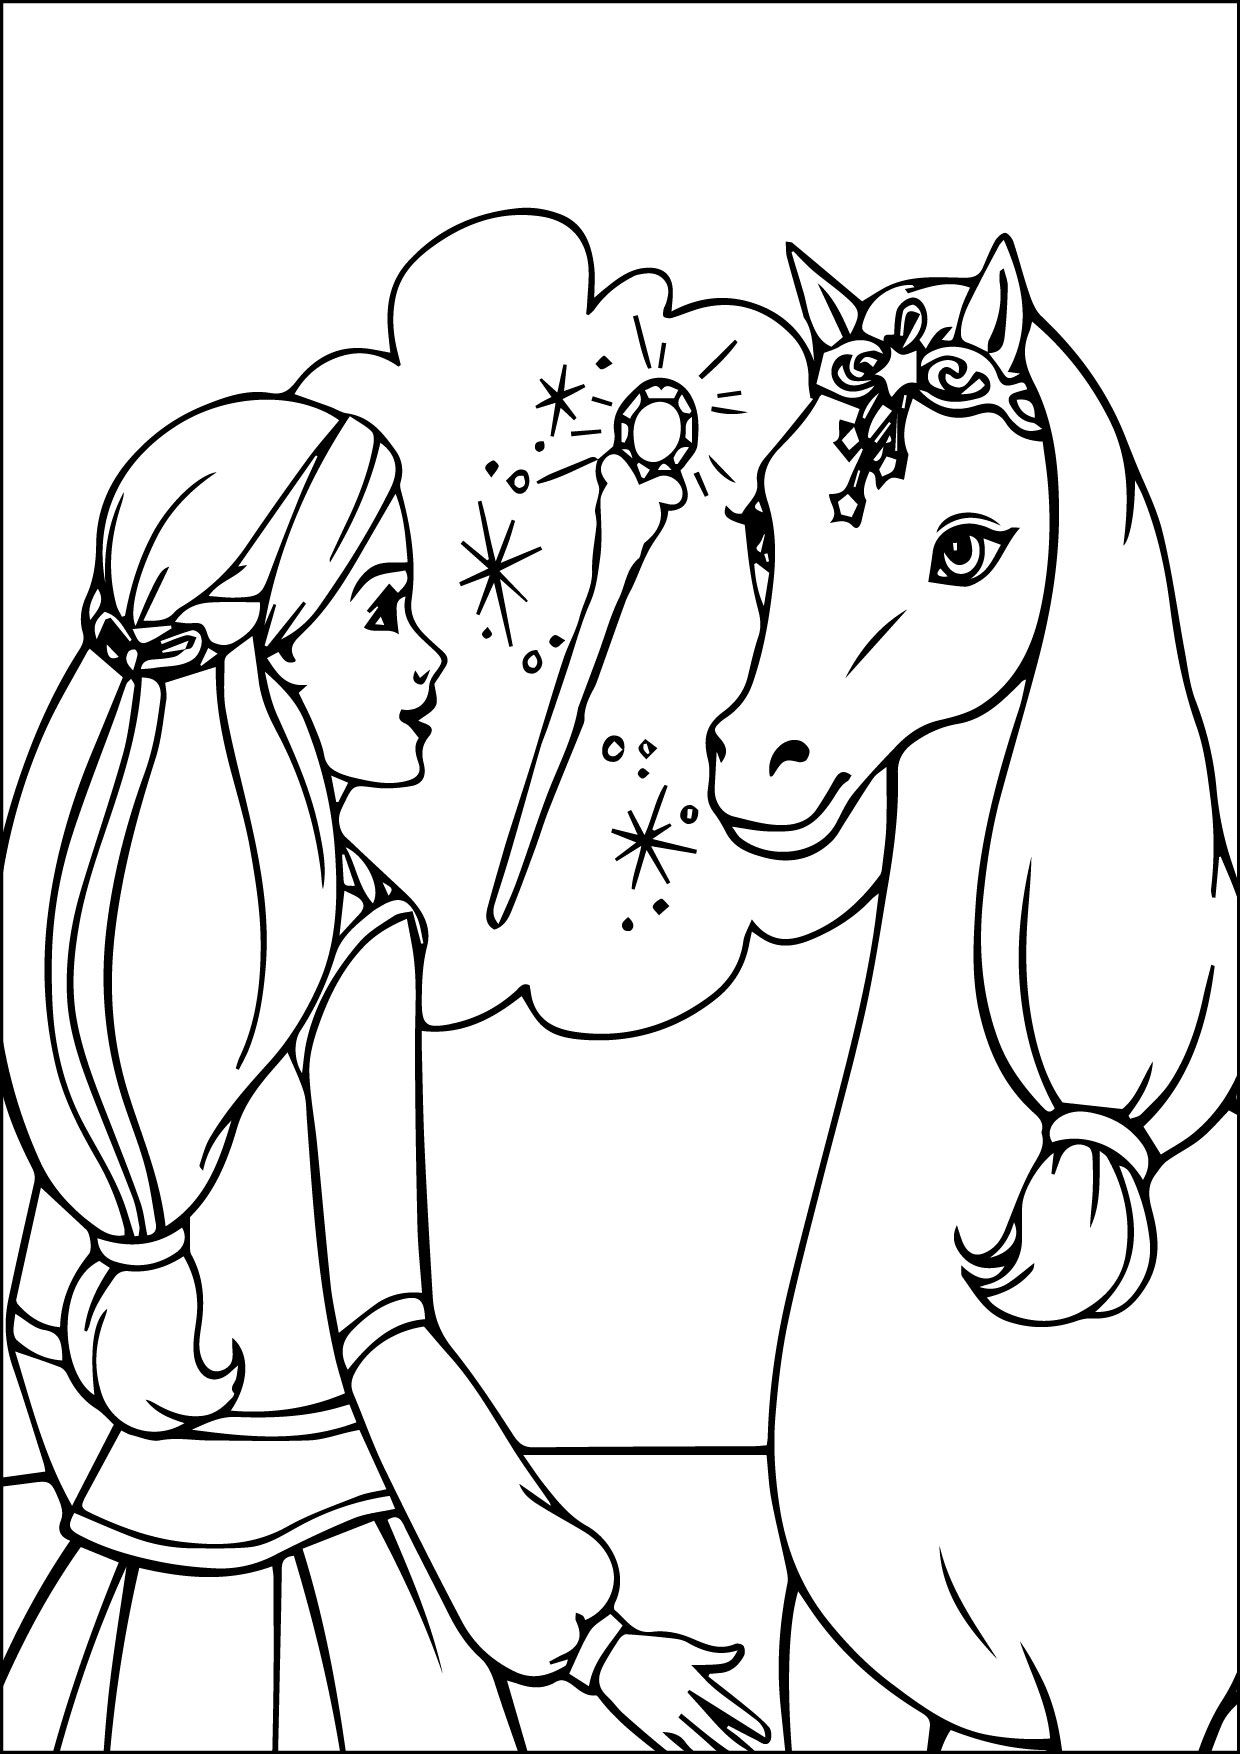 Cool Barbie Coloring Pages 07 09 2015 034058 Check More At Http Www Mcoloring Com Index Php 2015 Unicorn Coloring Pages Barbie Coloring Pages Barbie Coloring